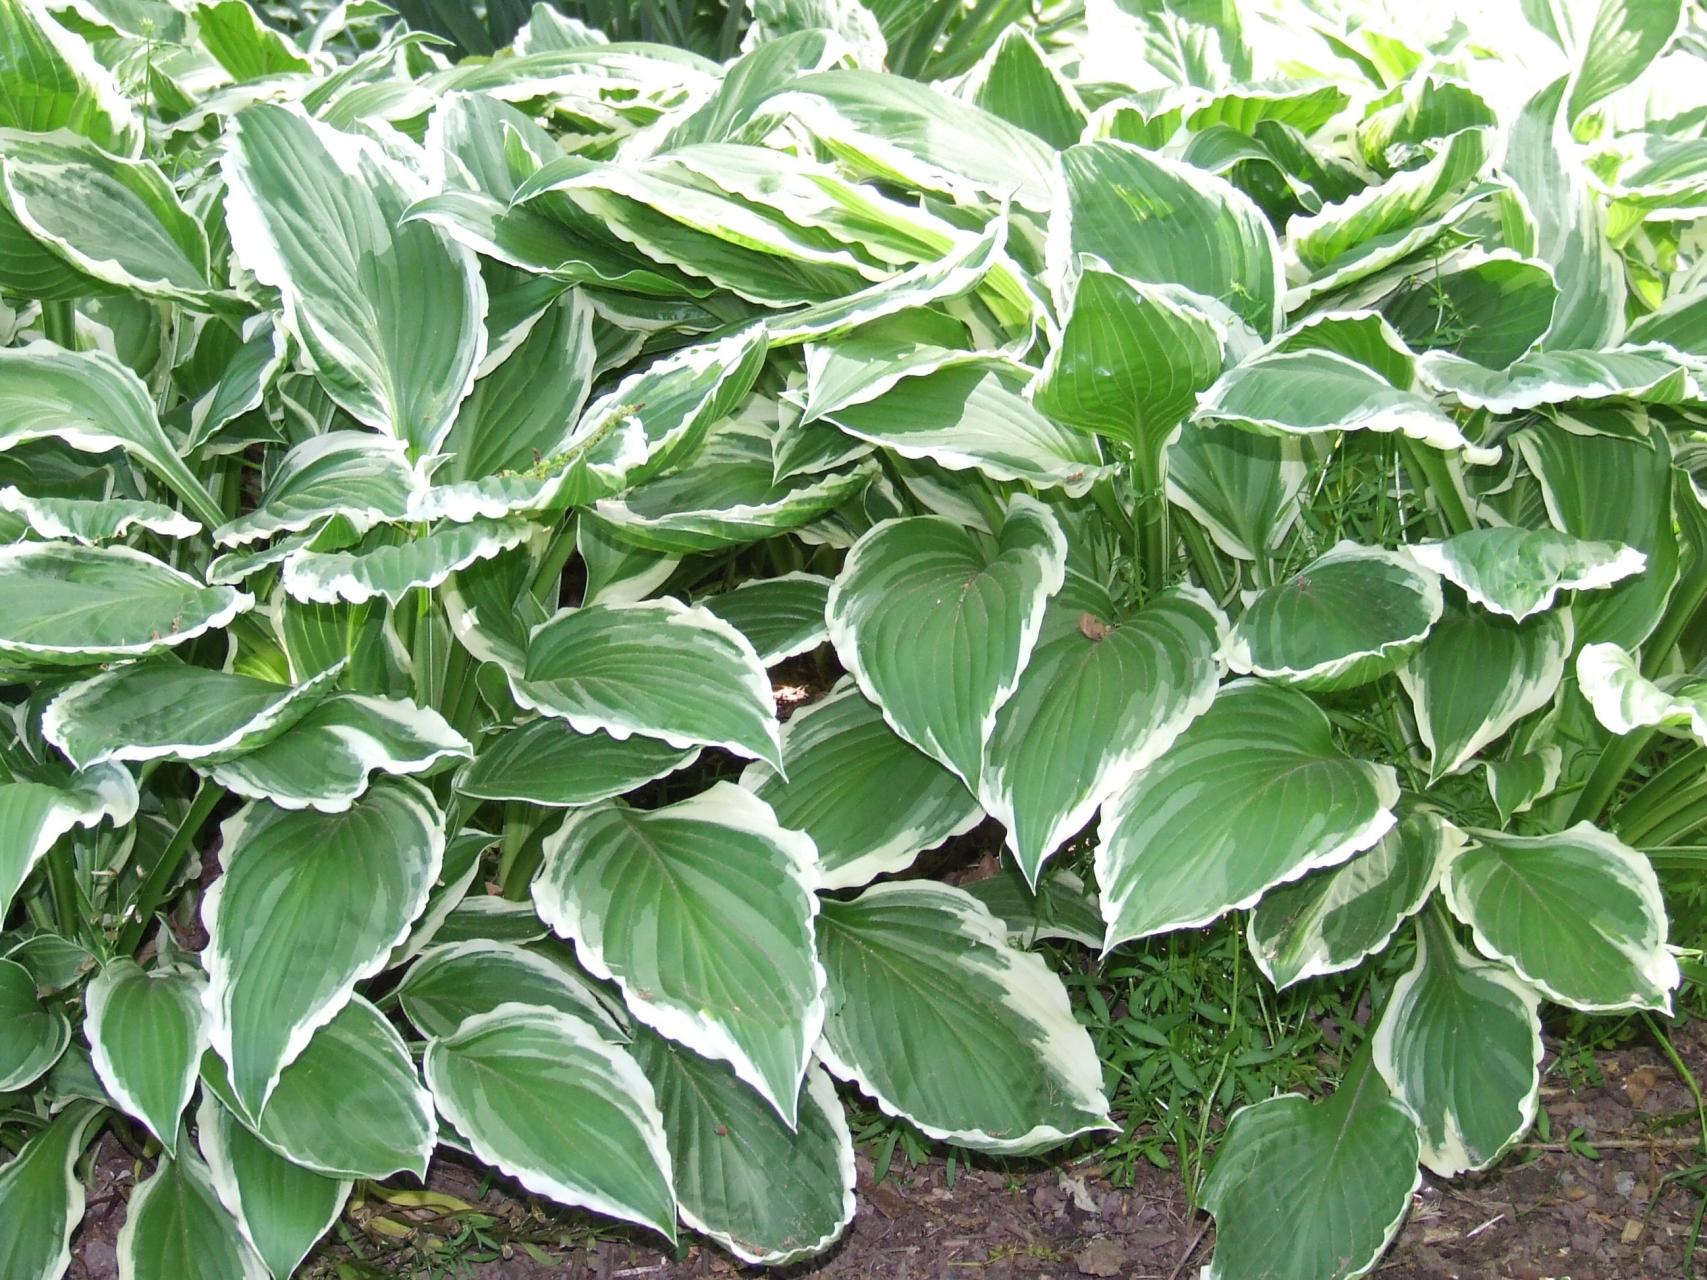 Types Of Hosta Plants How Many Types Of Hosta Are There Dummer